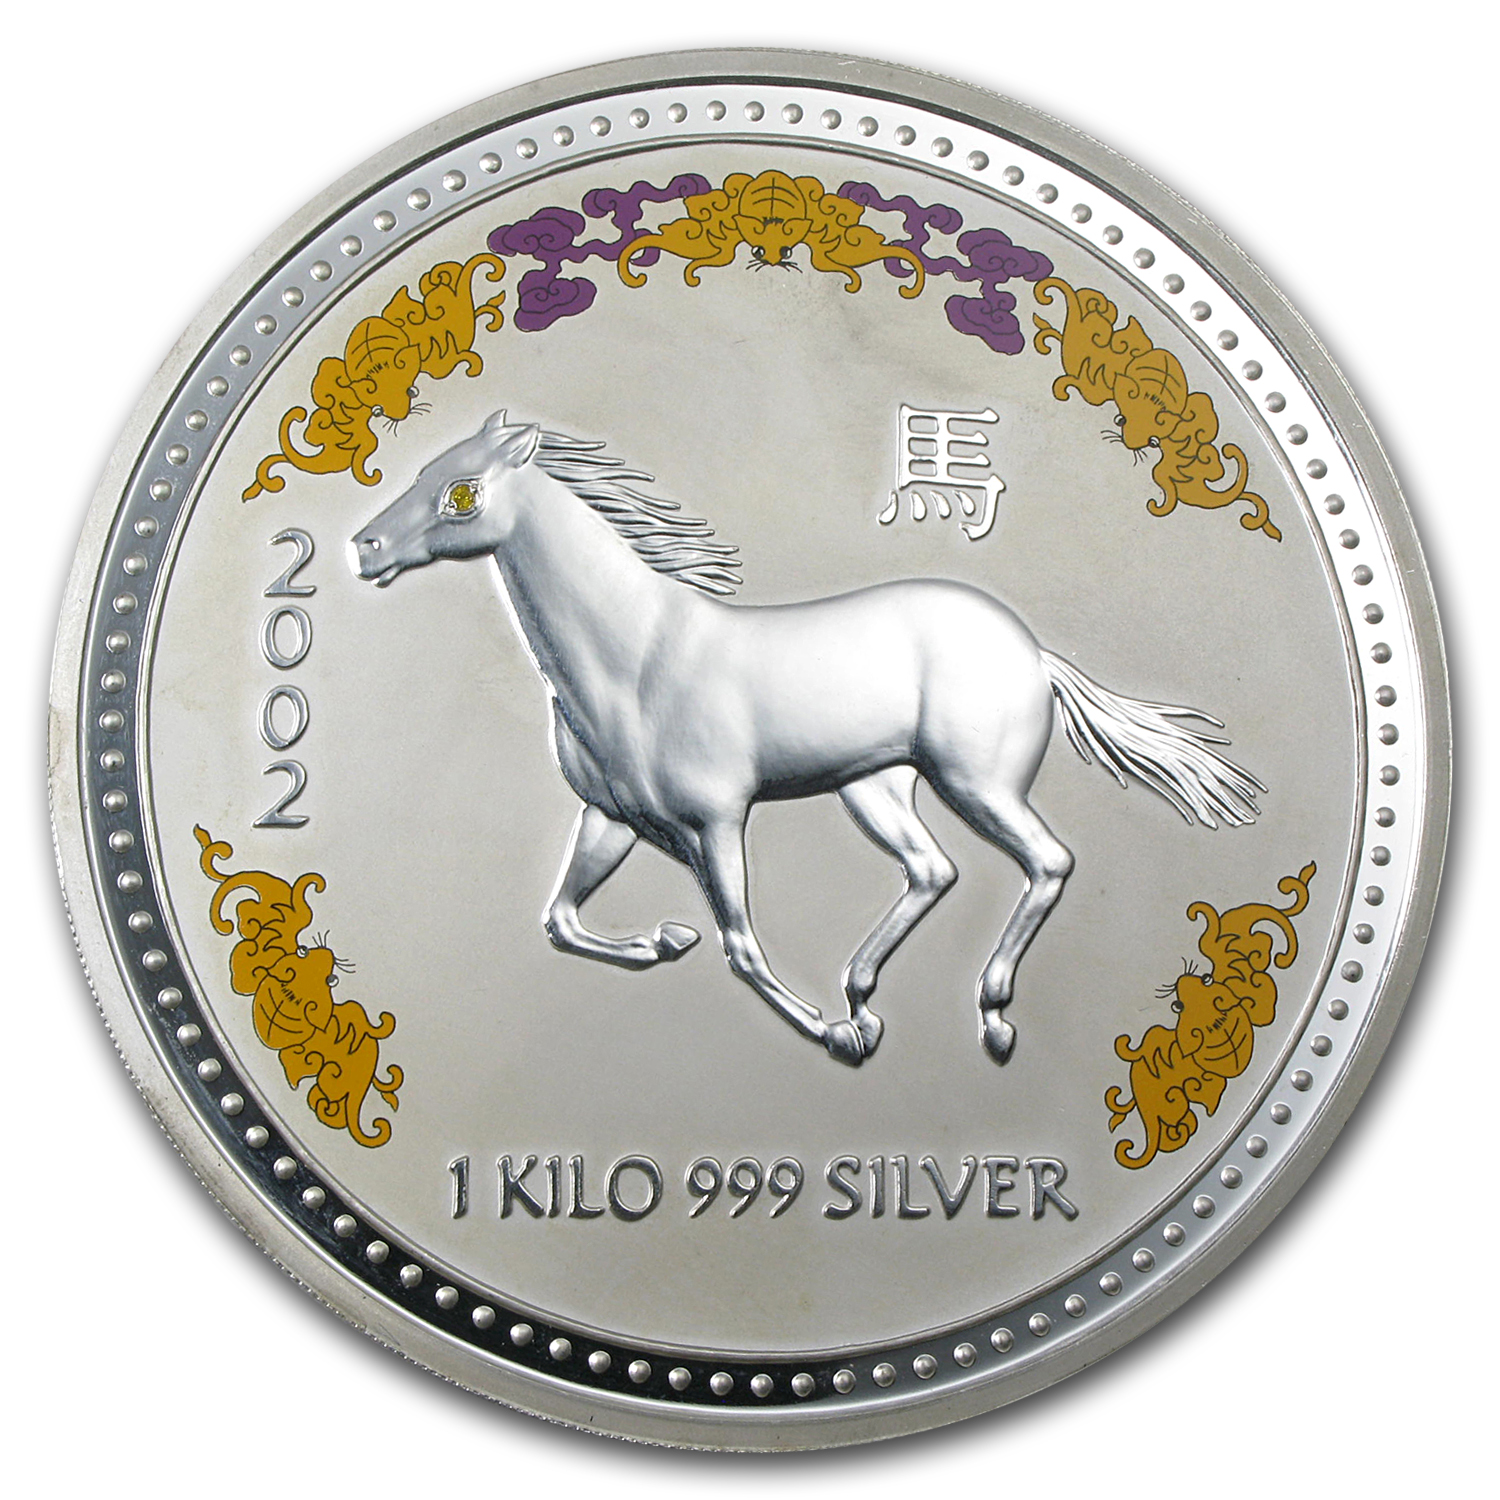 2002 1 kilo Silver Year of the Horse (Diamond Eye) (Abrasions)